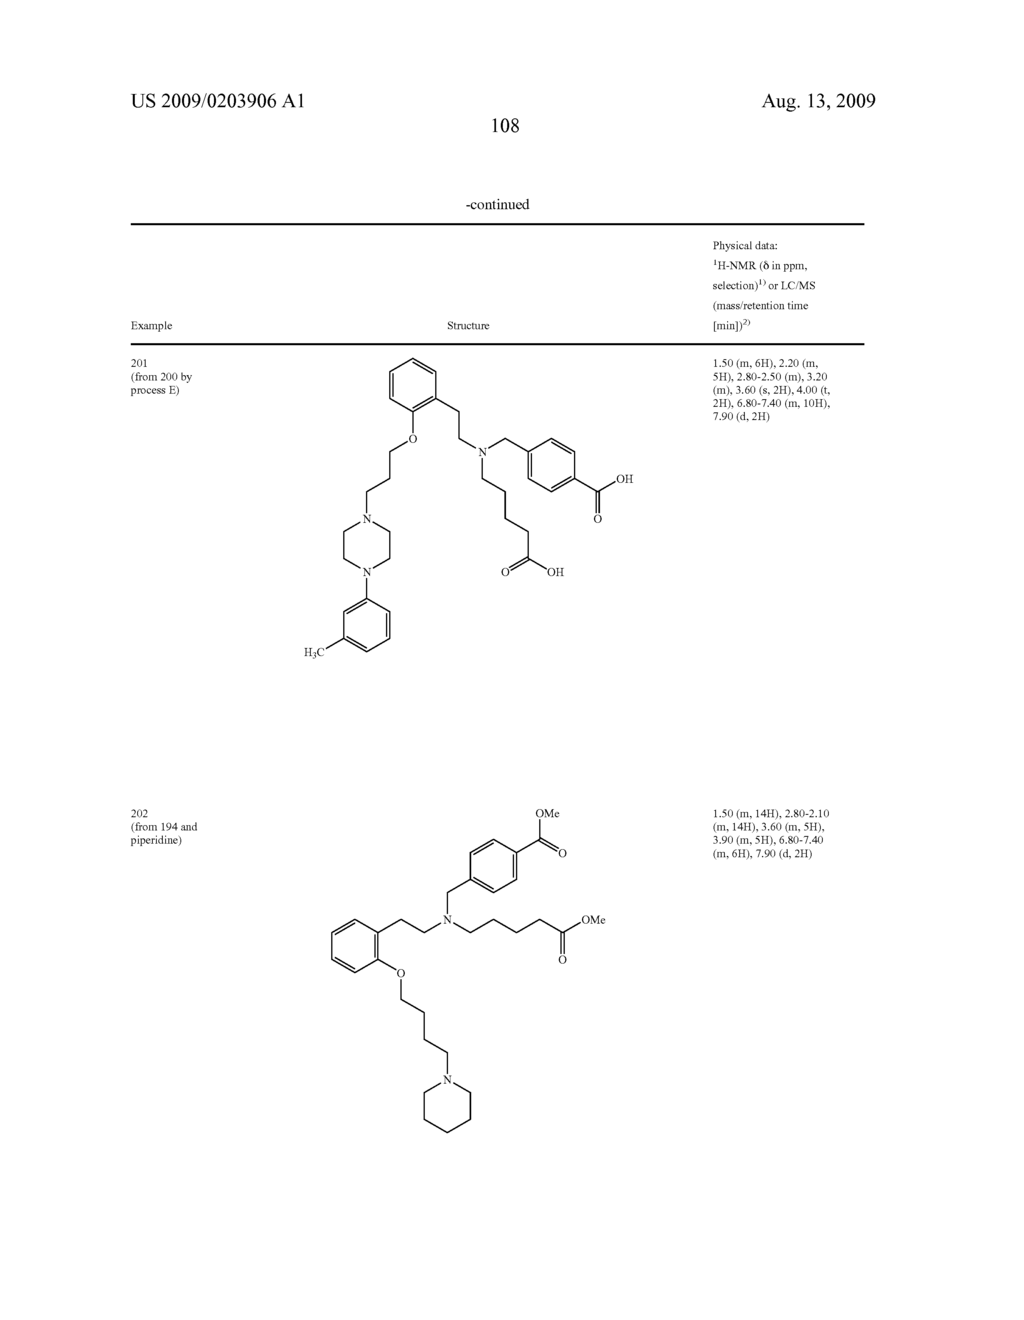 NOVEL AMINODICARBOXYLIC ACID DERIVATIVES HAVING PHARMACEUTICAL PROPERTIES - diagram, schematic, and image 109